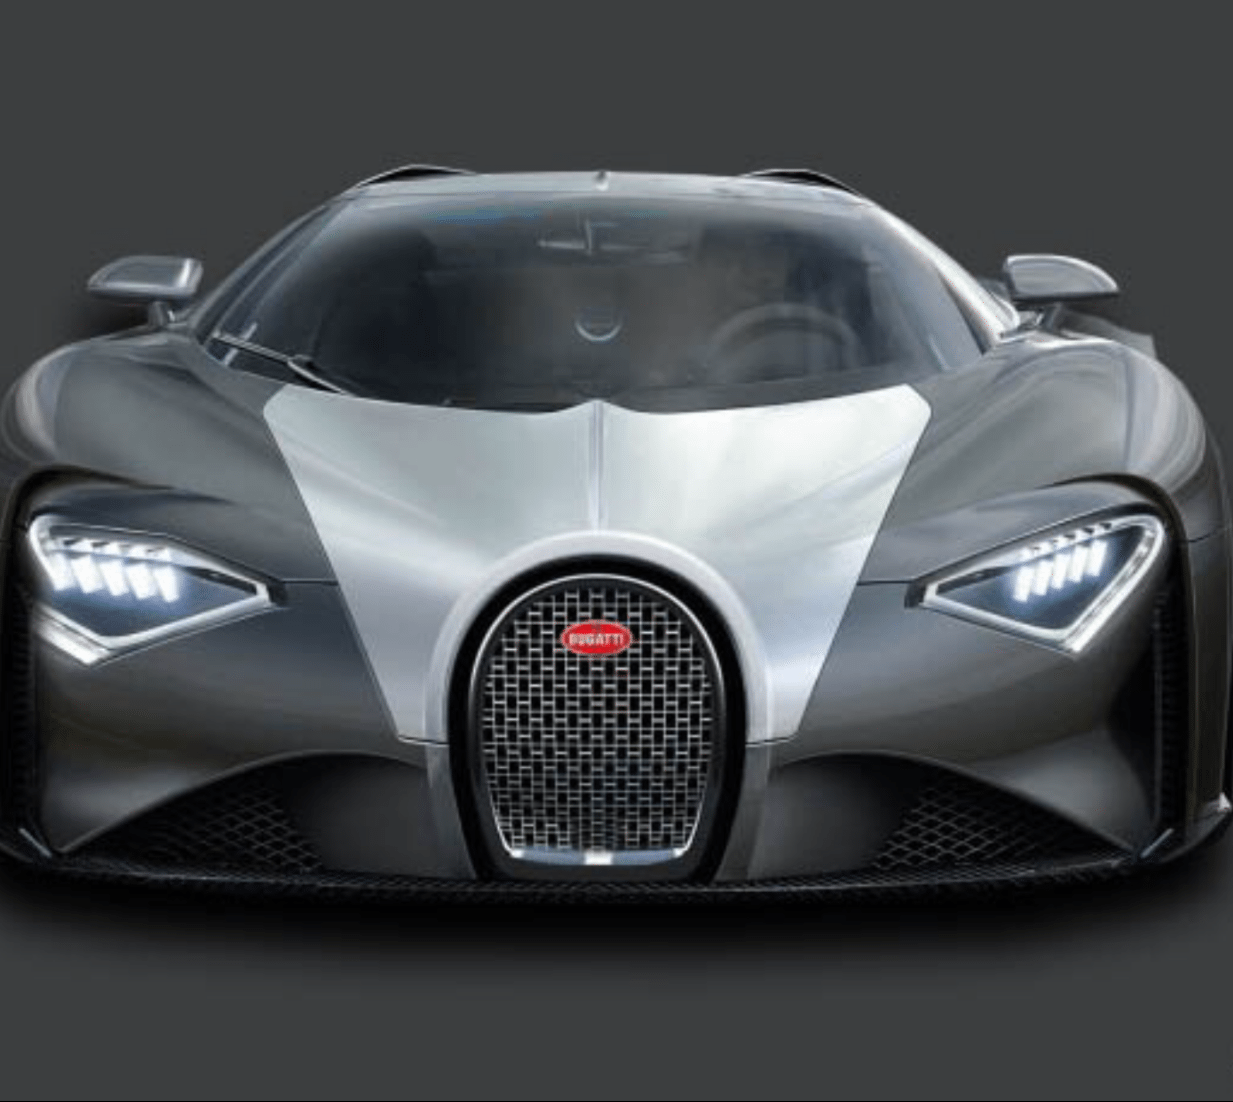 Bugatti Chiron: A Kid's Blog On Luxury Cars